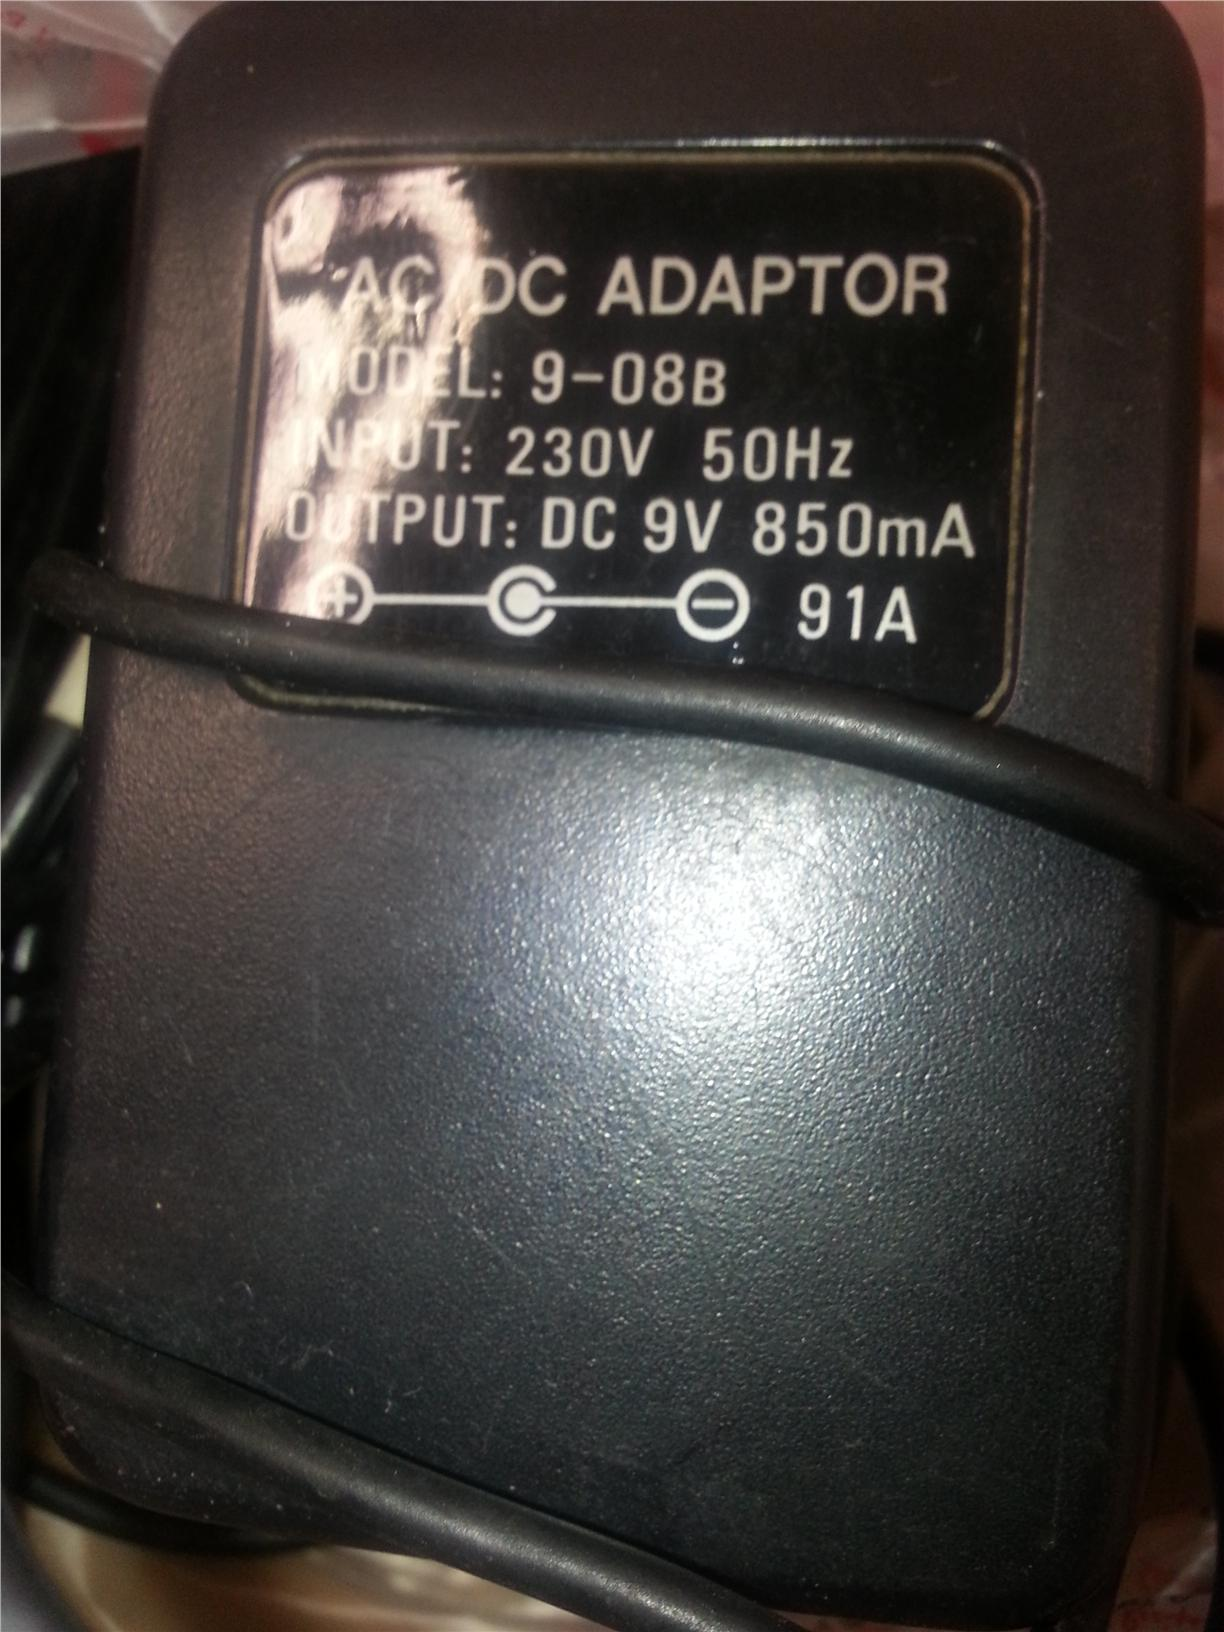 Cable AC to DC Adaptor (Inc Postage)